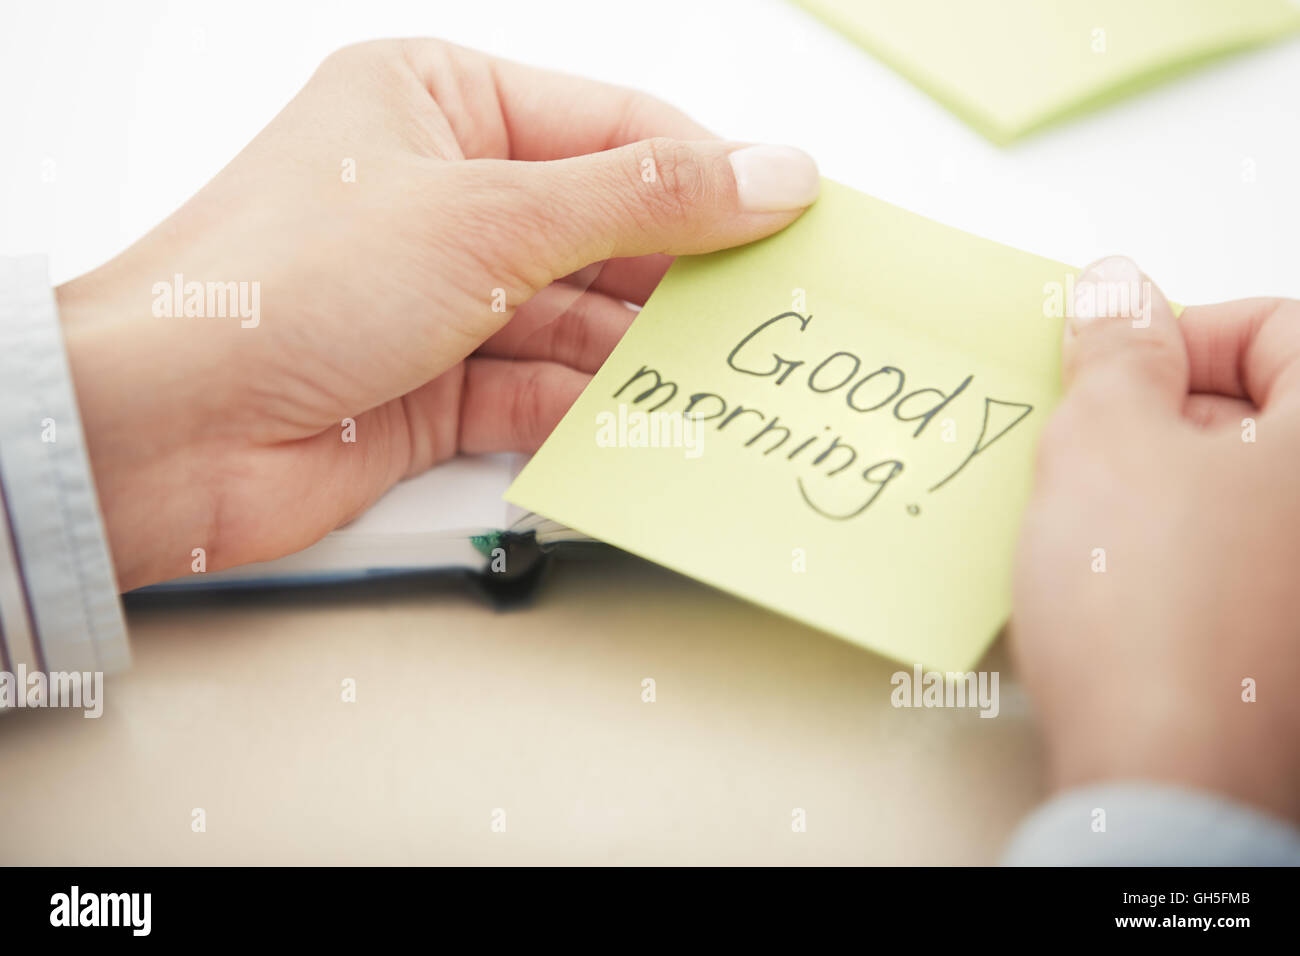 Hands holding sticky note with Good morning text Stock Photo